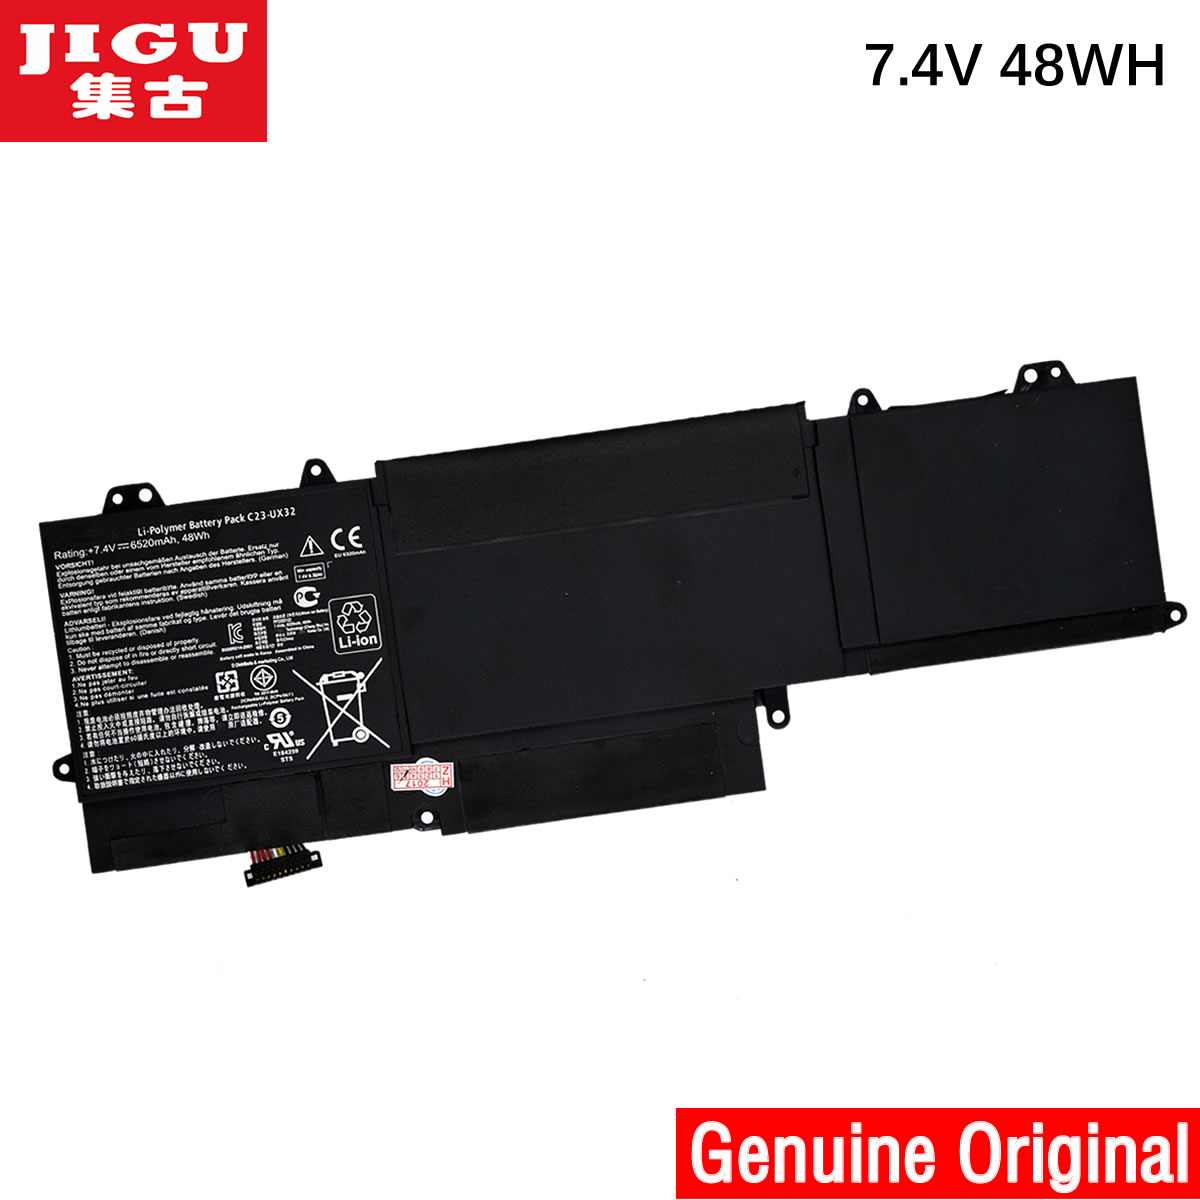 JIGU C23-UX32 Original Laptop Battery For Asus VivoBook U38N U38K U38DT For Zenbook UX32 UX32VD UX32LA 7.4V 48WH все цены